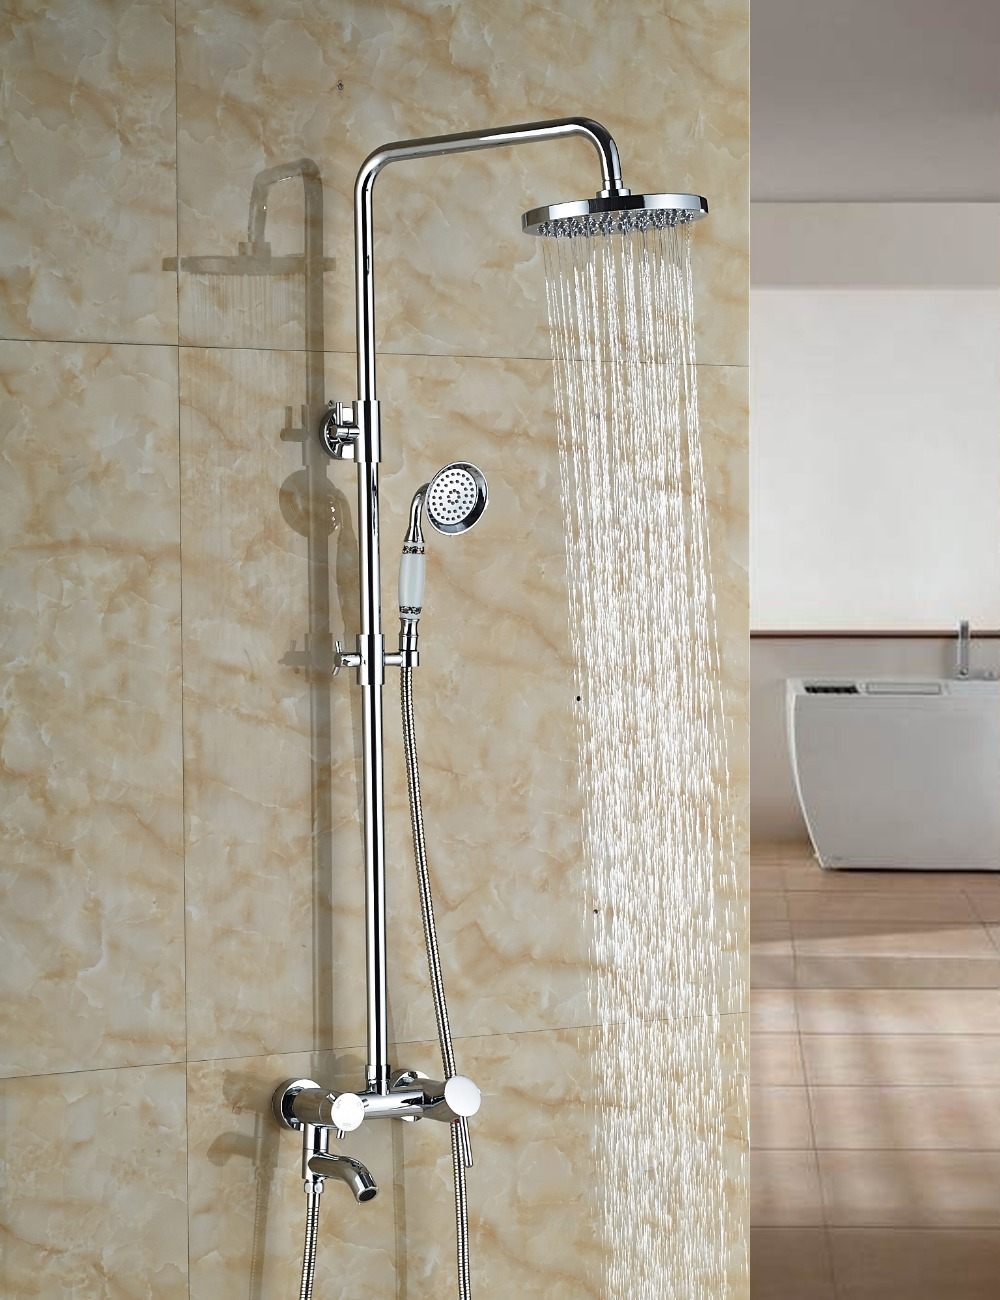 Wholesale And Retail Wall Mounted Chrome Finish Round Rain Shower Head Faucet Single Handle Tub Valve Mixer Tap Shower new chrome finish wall mounted bathroom shower faucet dual handle bathtub mixer tap with ceramic handheld shower head wtf931